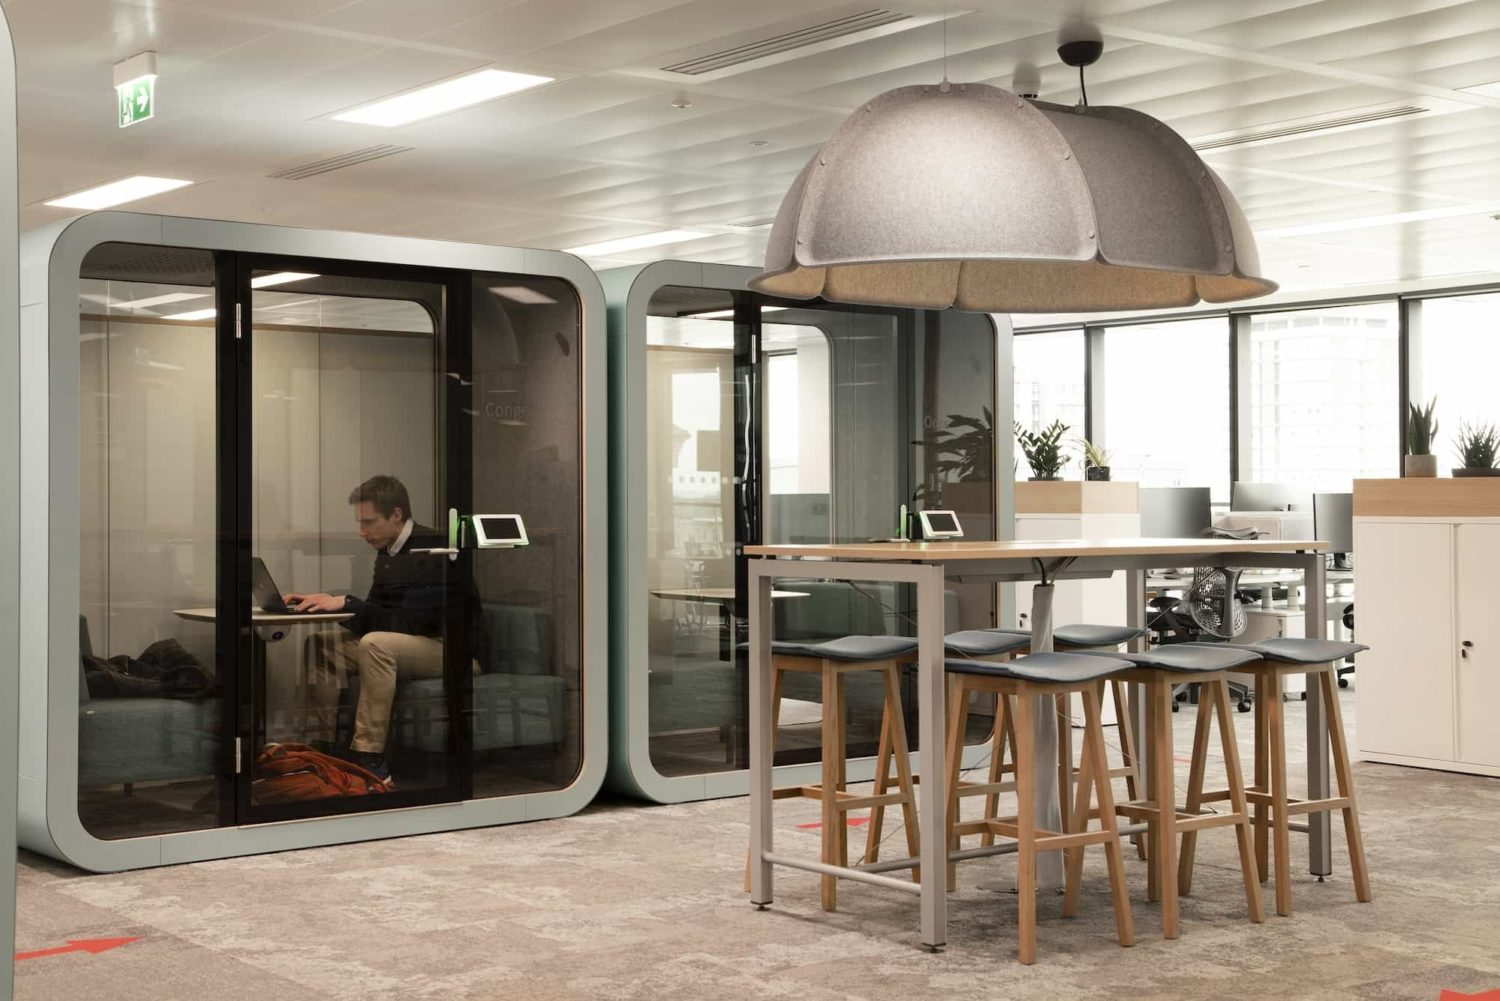 Generation meeting pod fit out